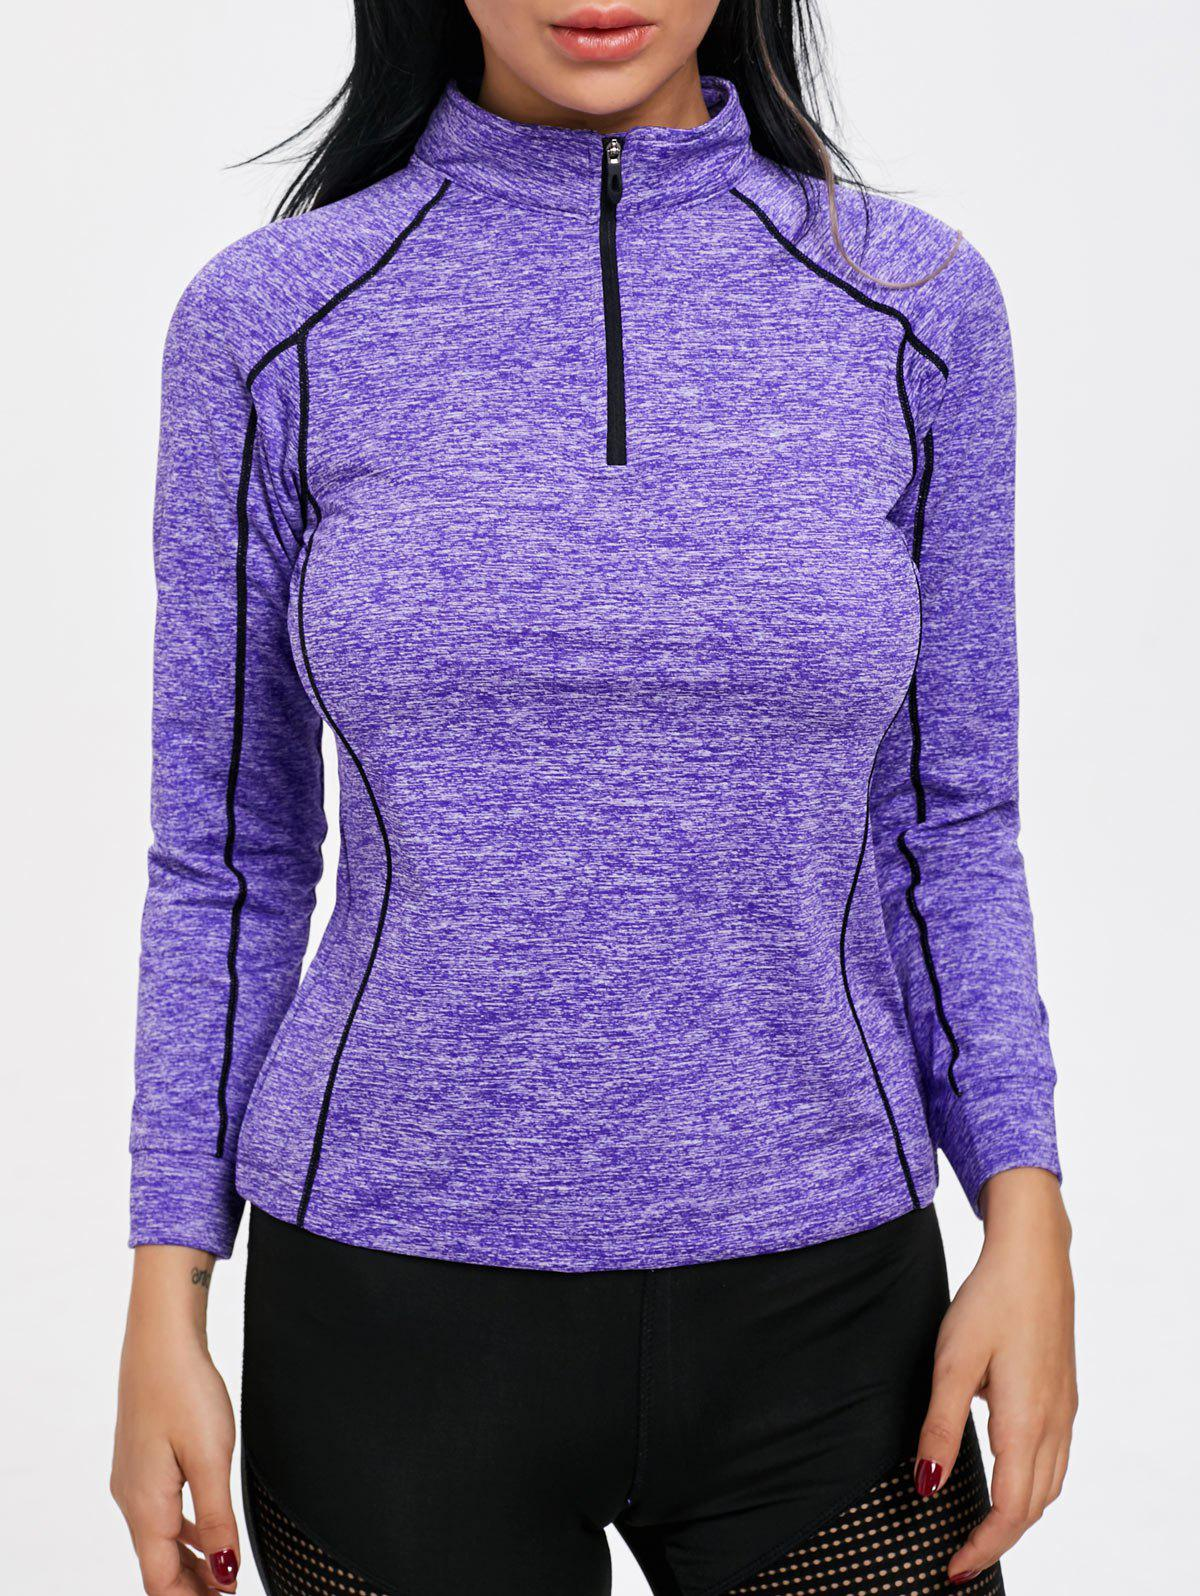 Sports Contrast High Neck Half Zip T-shirt - PURPLE M